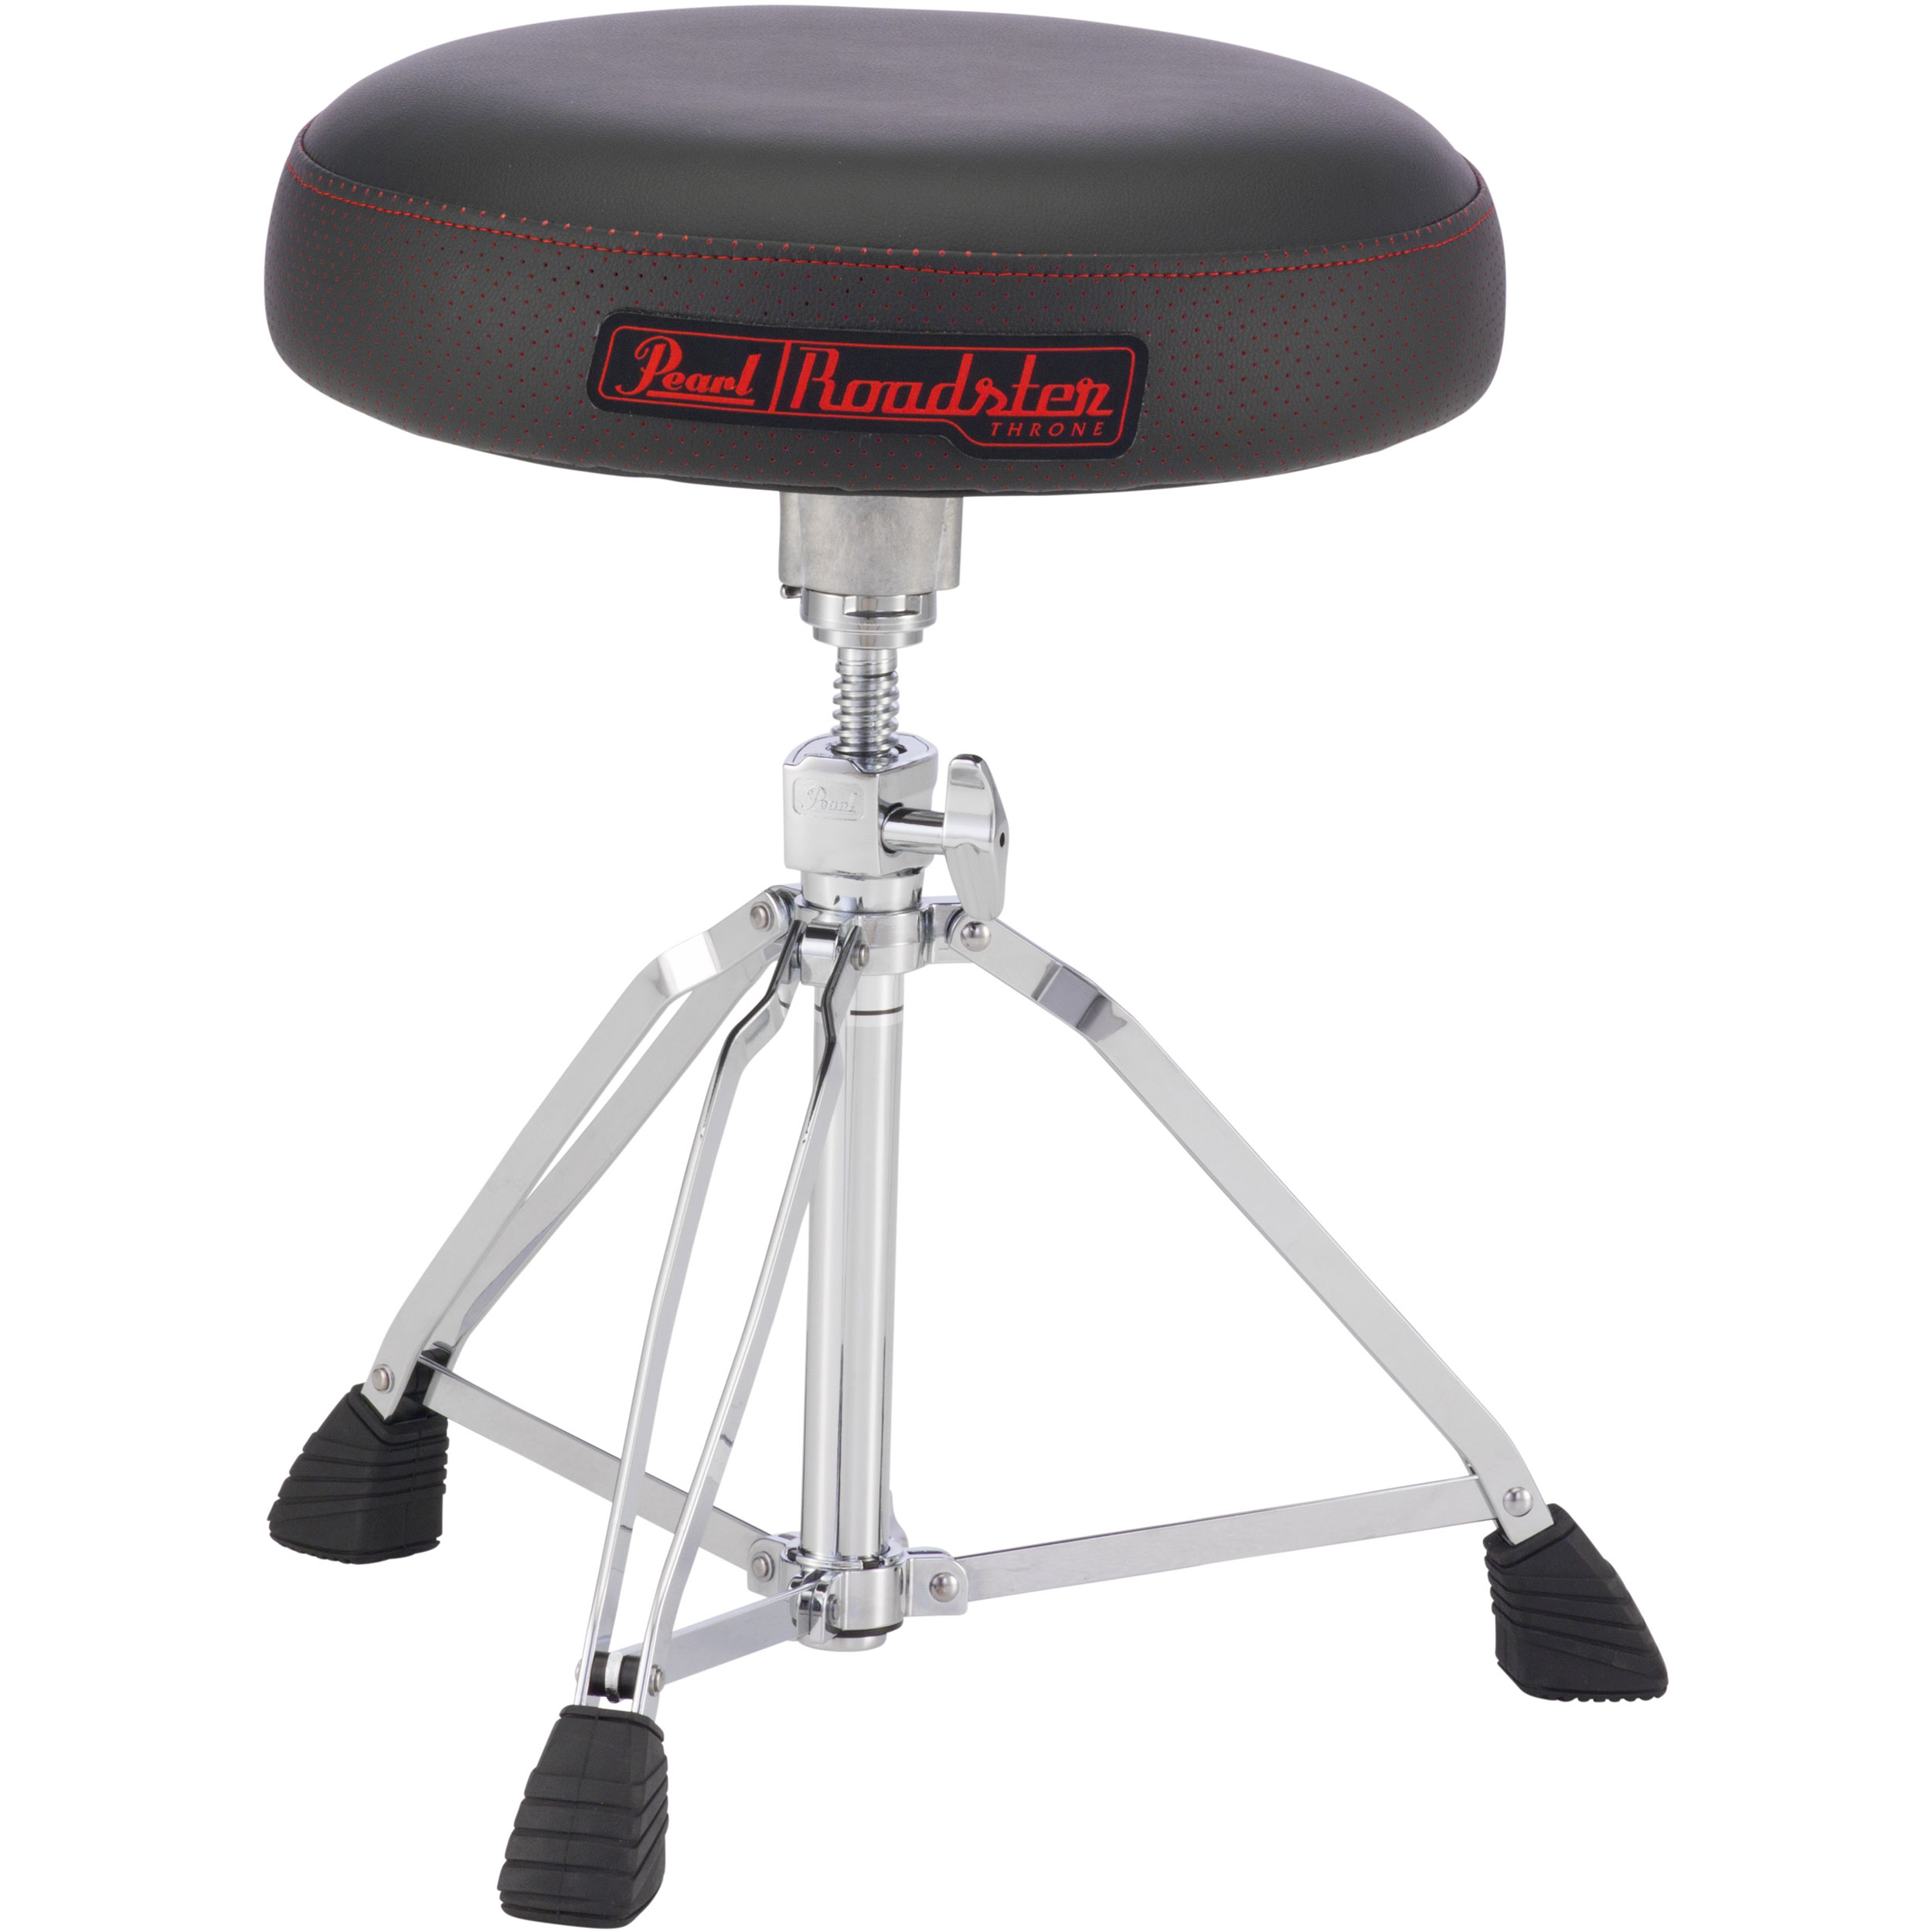 Pearl Roadster Round Vented Multi-Core Throne